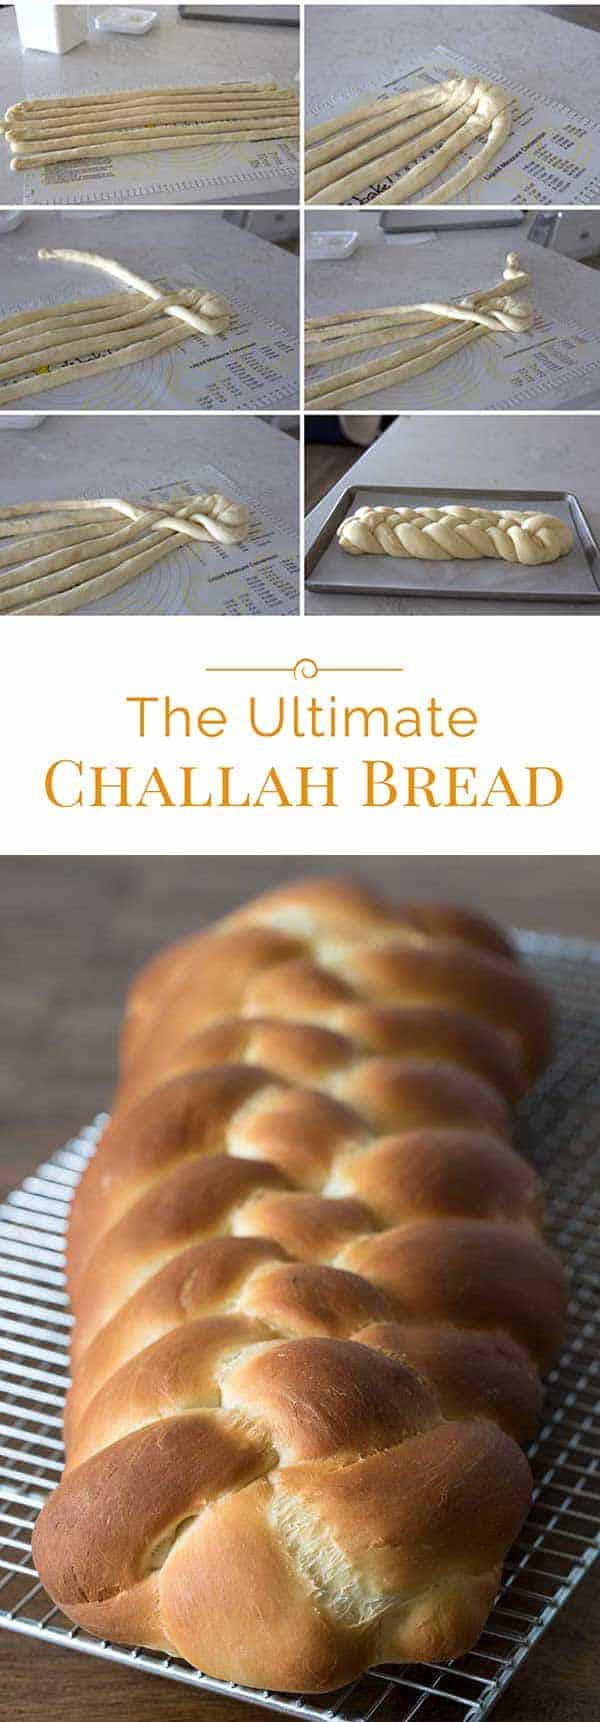 Ultimate-Challah-Bread-Collage